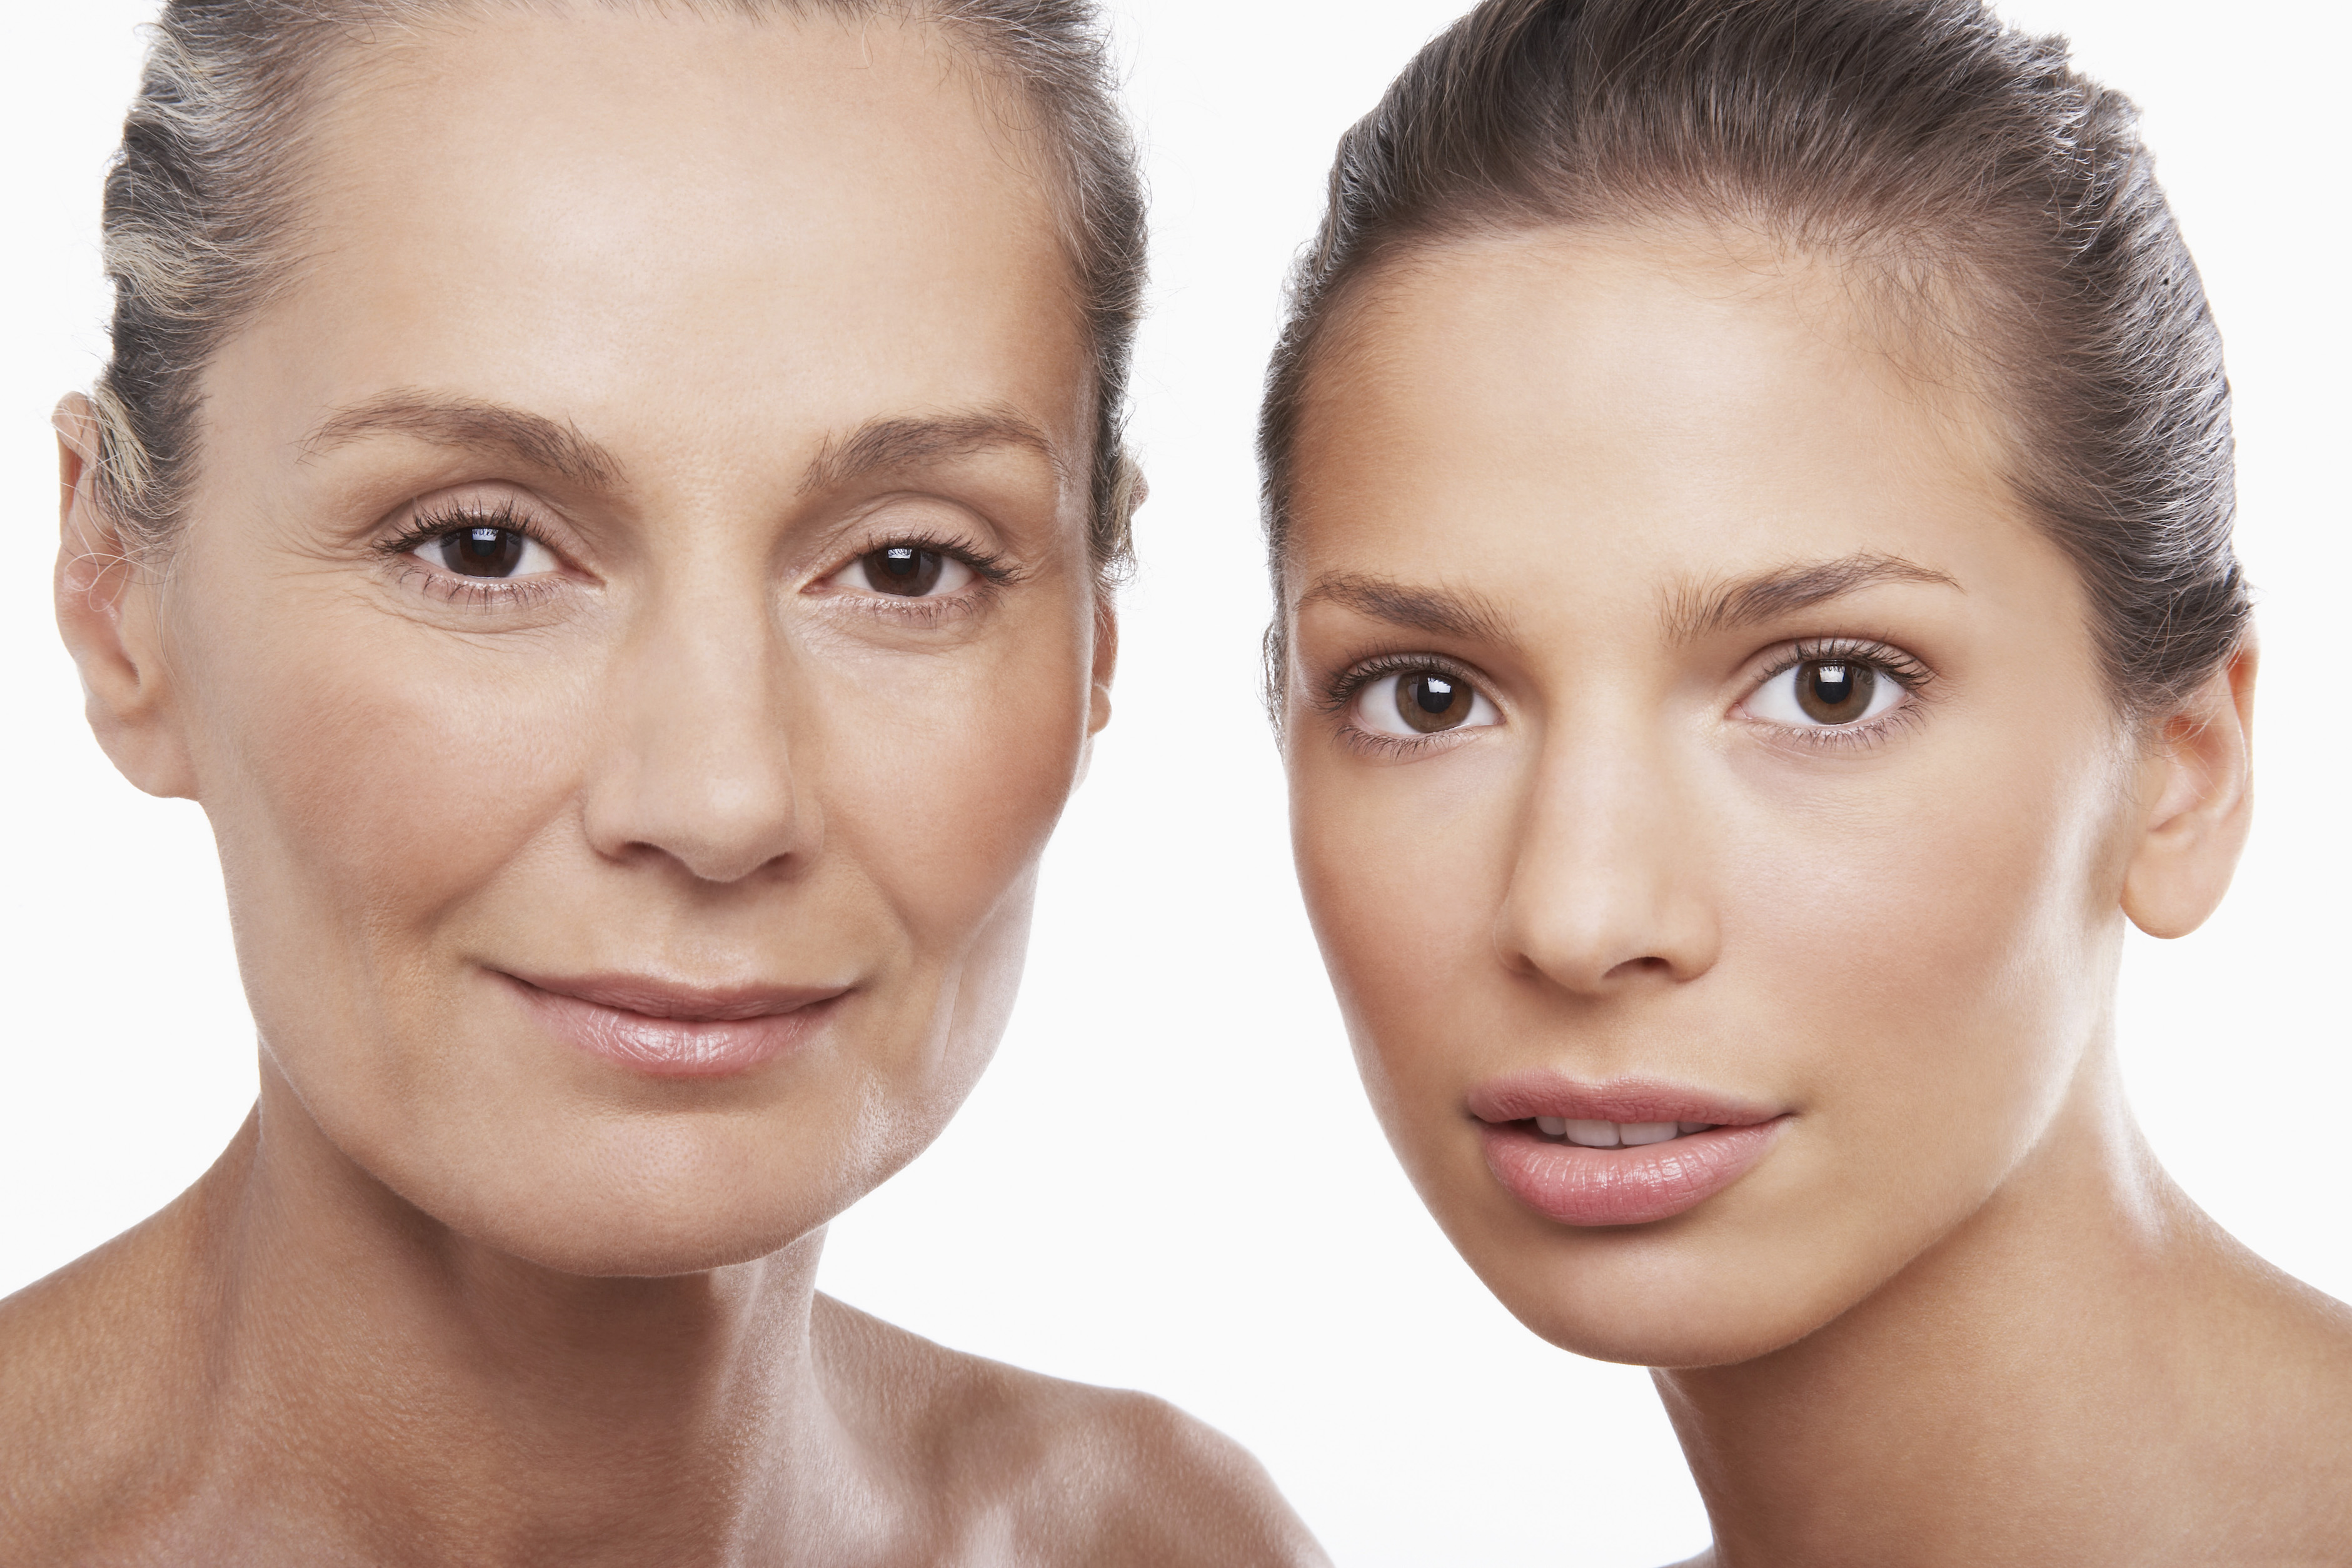 Inexpensive Topical Treatments for Younger-Looking Skin